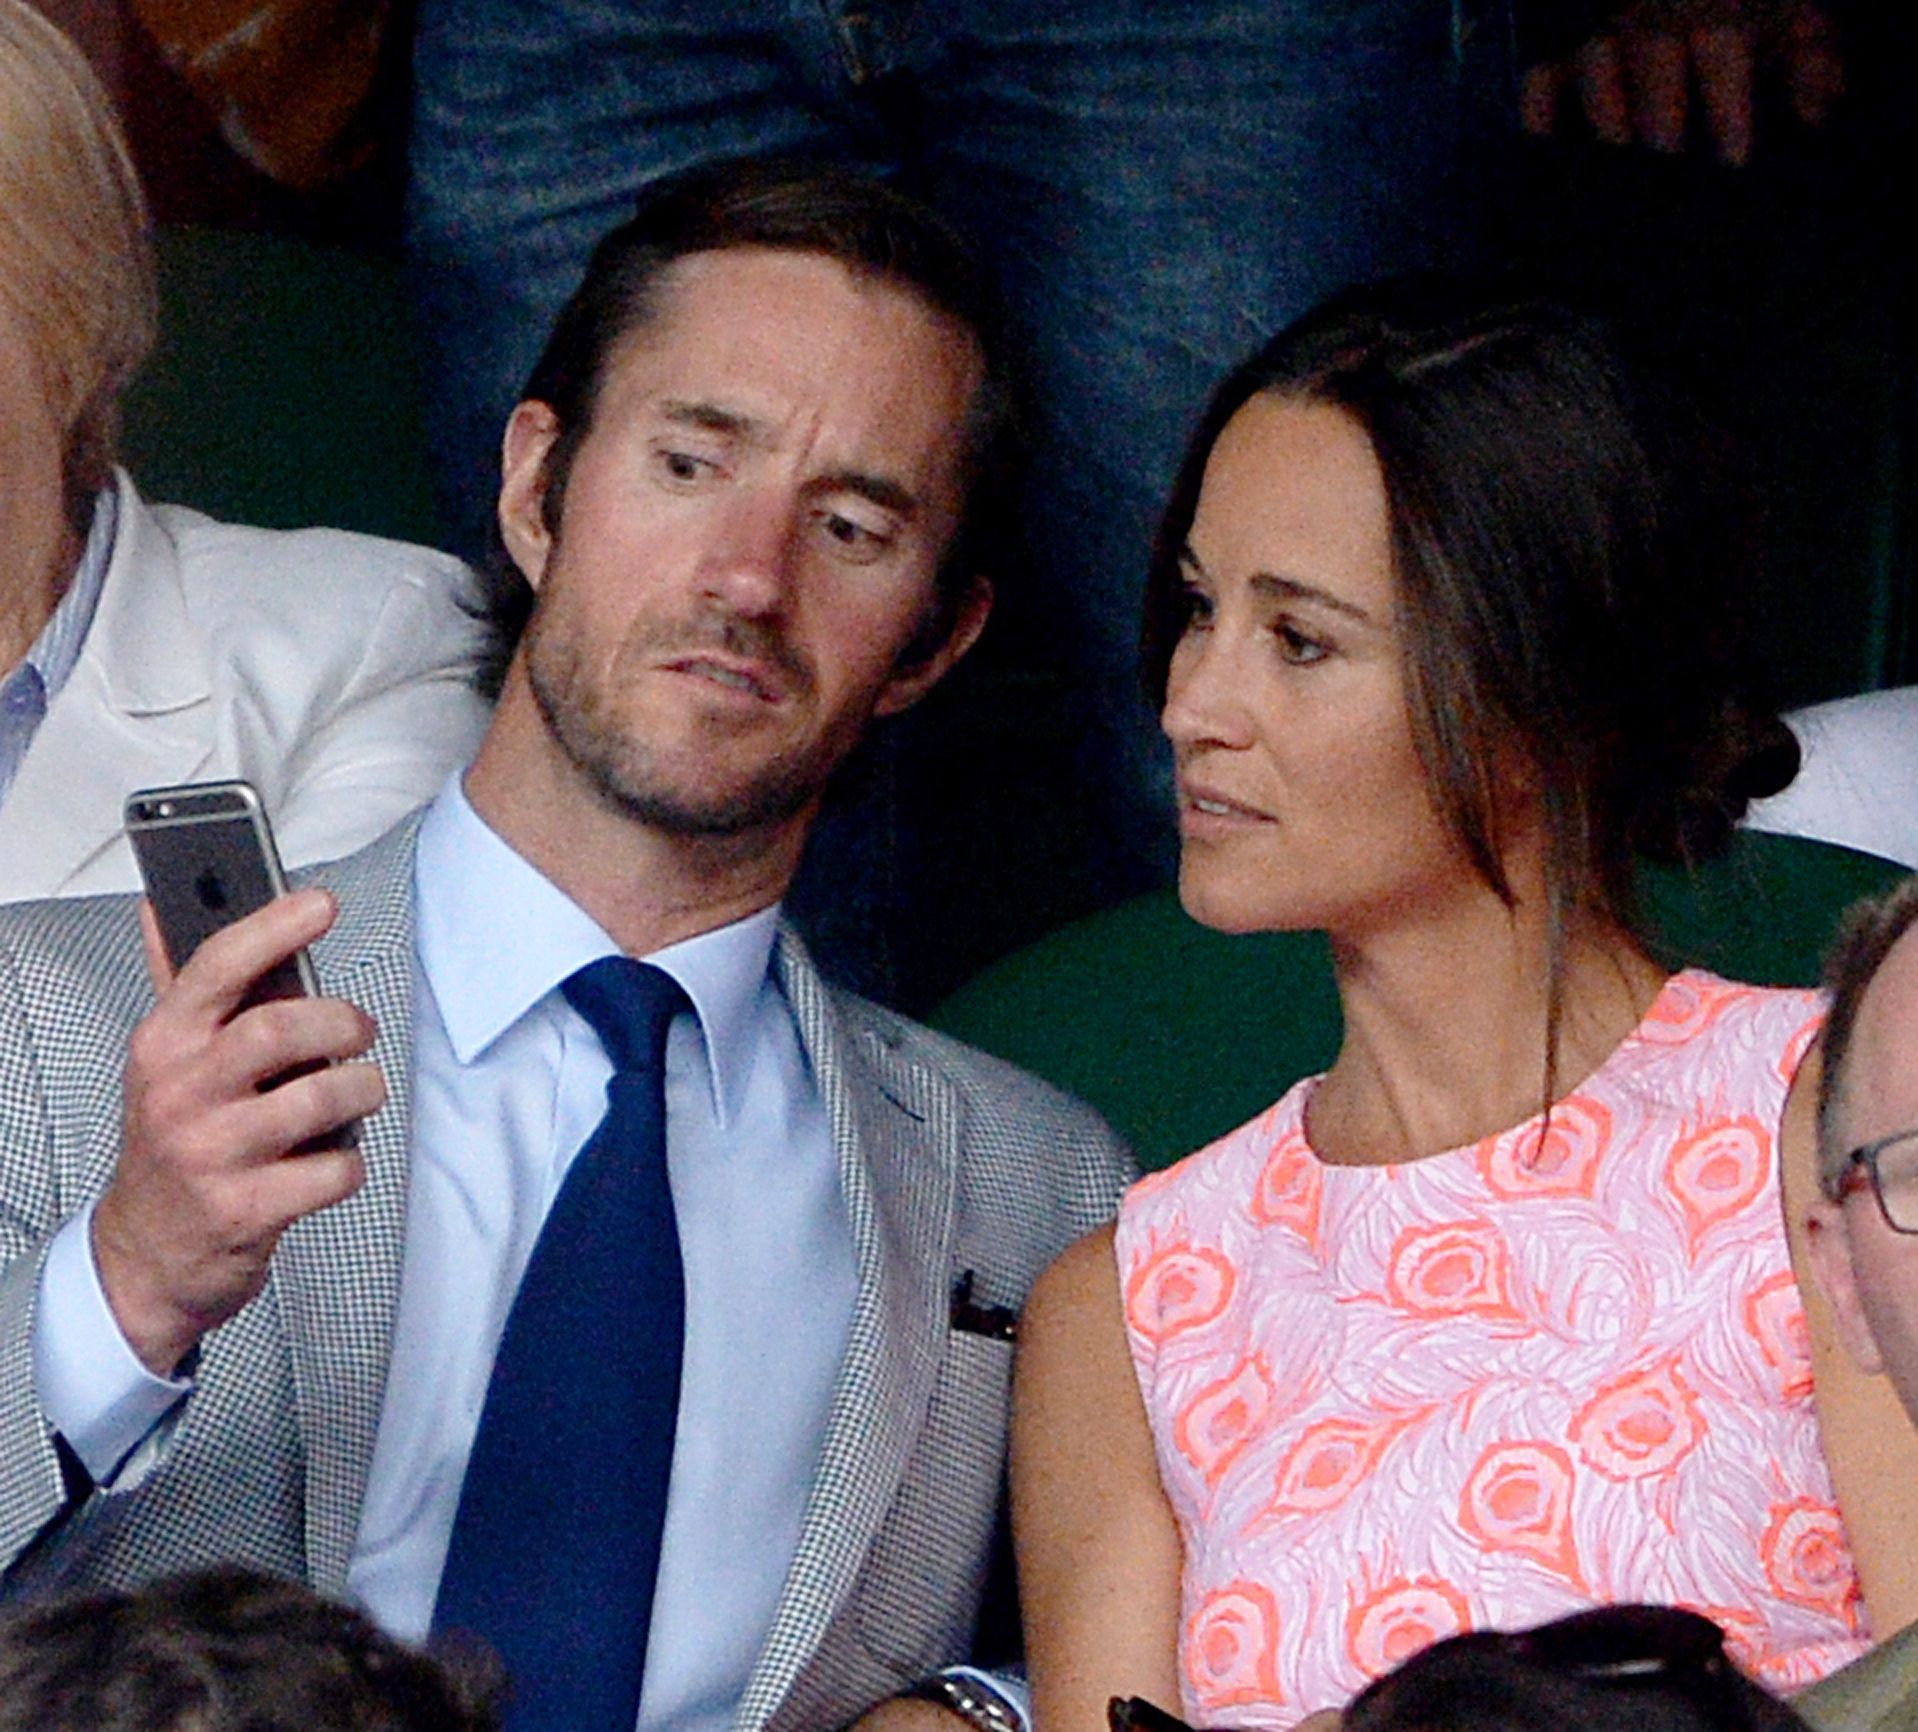 Pippa Middleton will marry James Matthews today in an event dubbed the society wedding of the